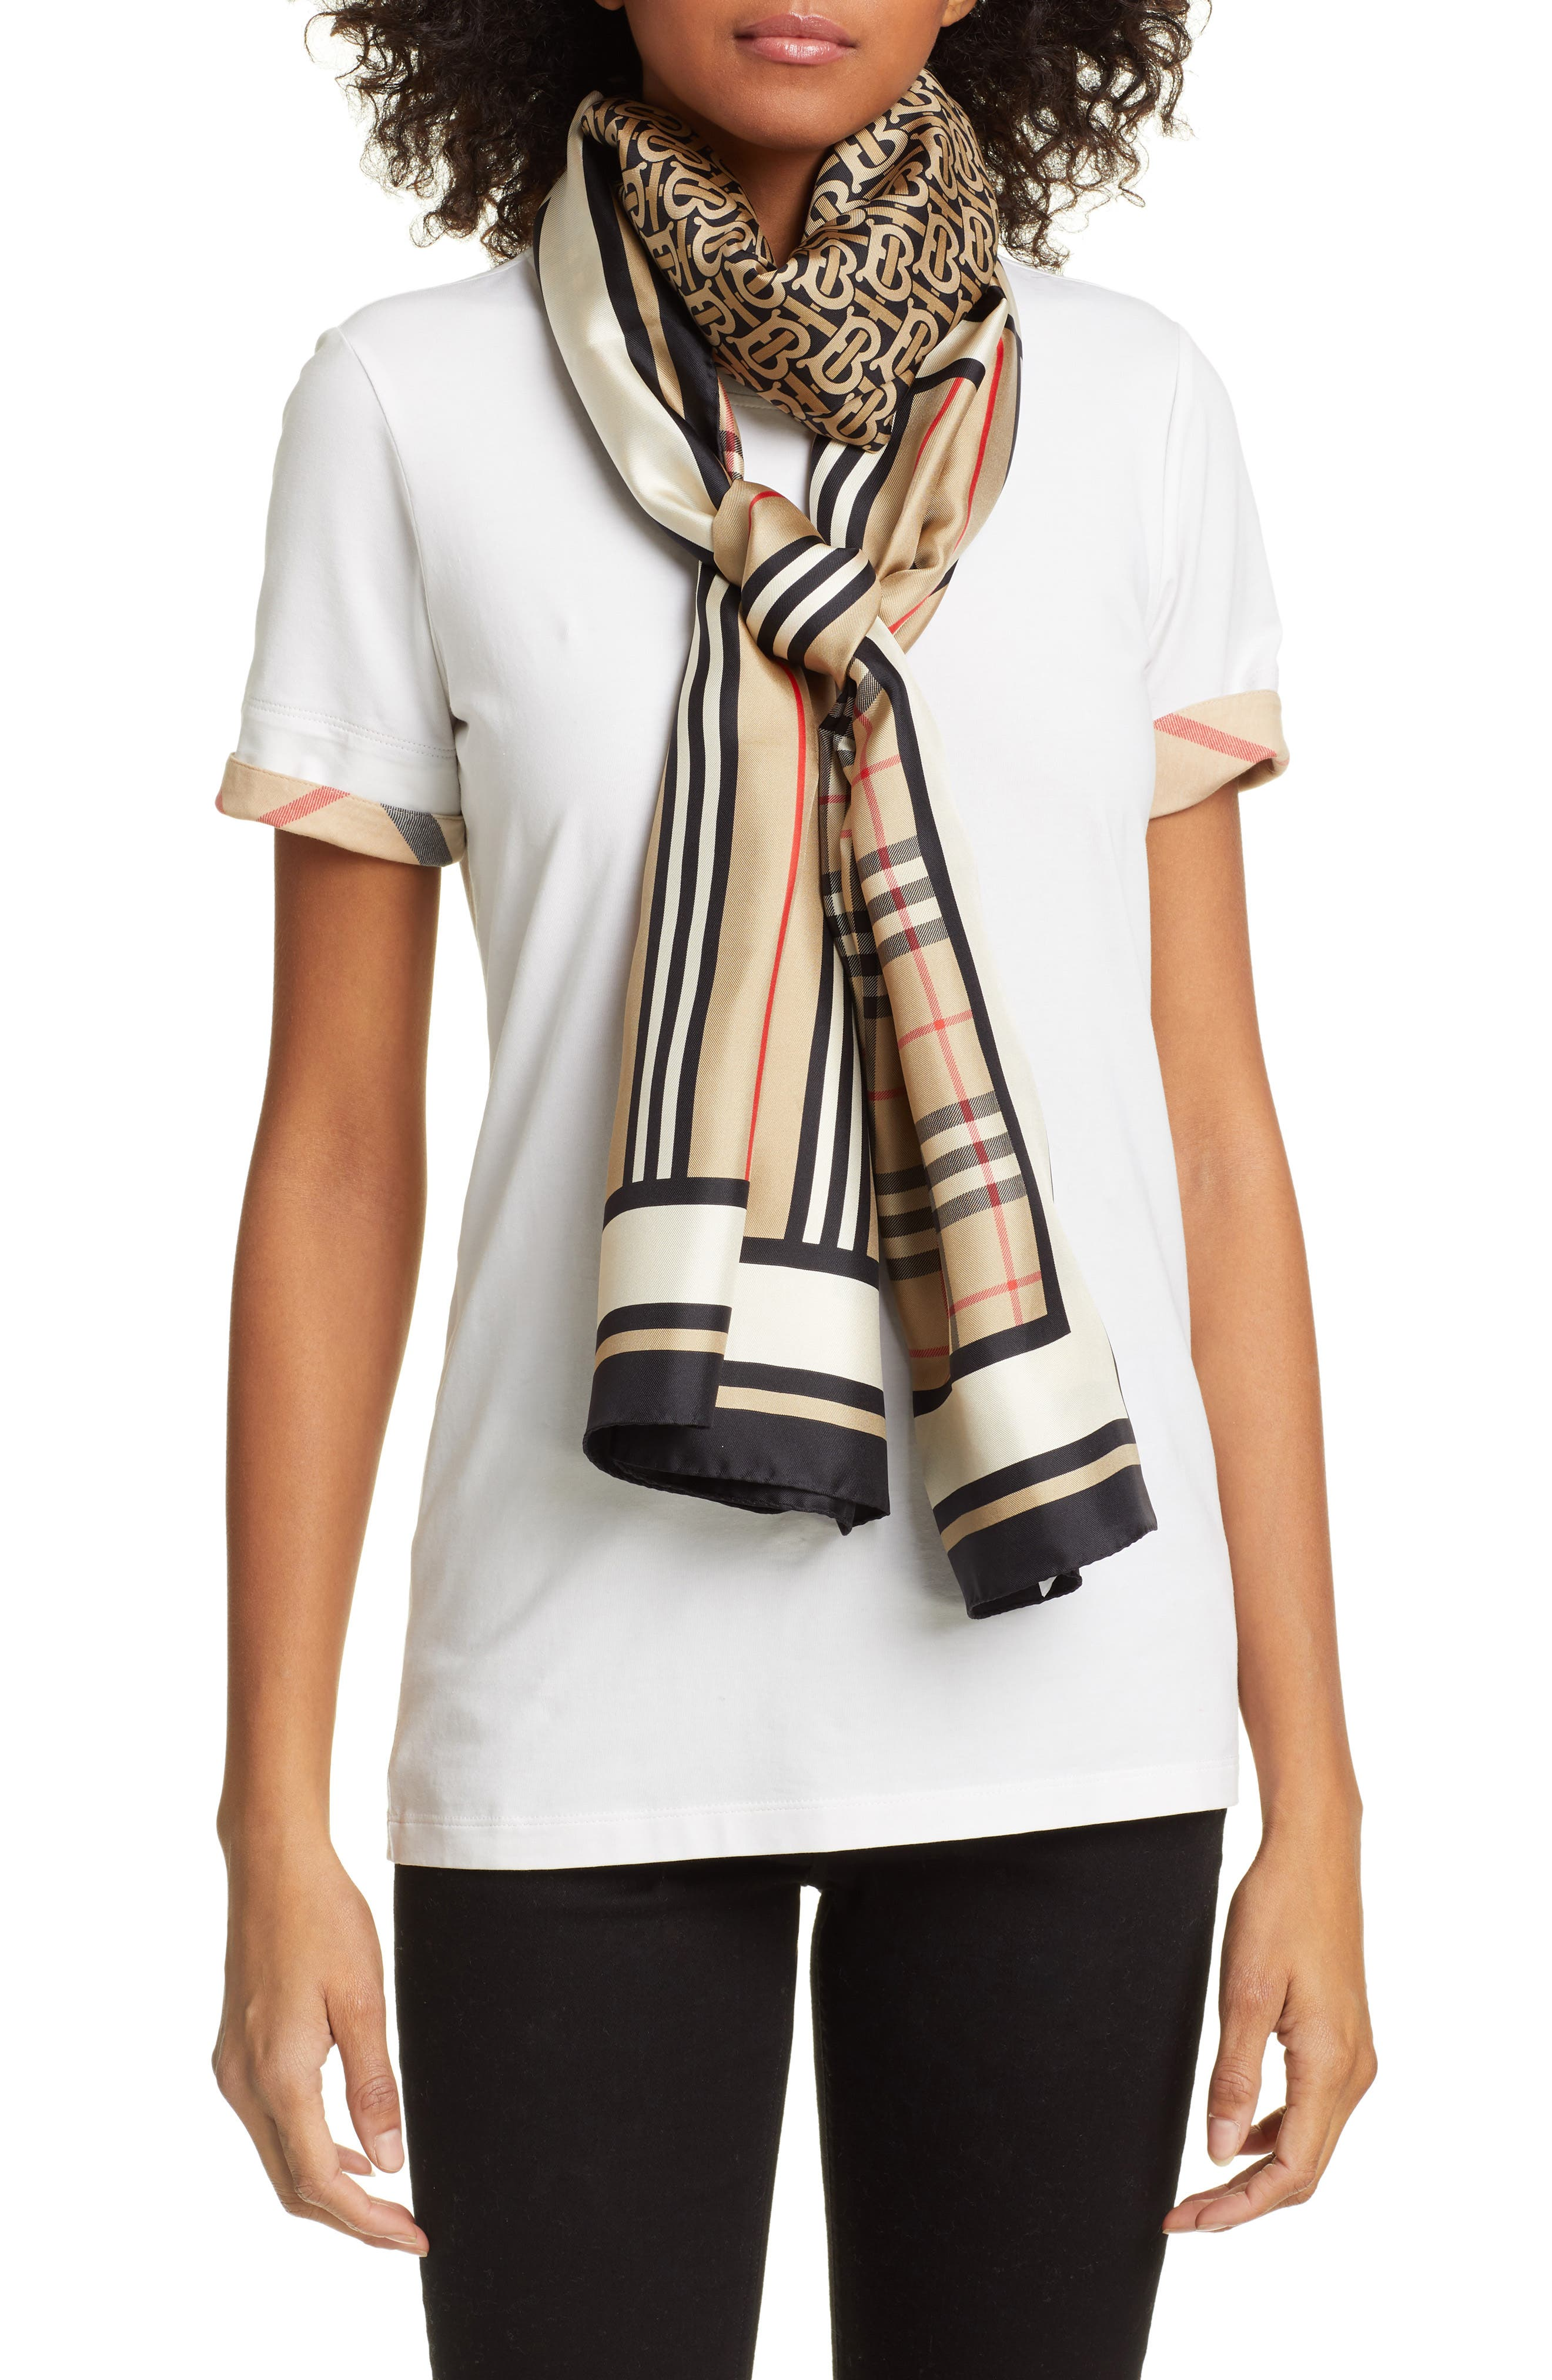 BURBERRY, Mixed Print Mulberry Silk Scarf, Main thumbnail 1, color, ARCHIVE BEIGE